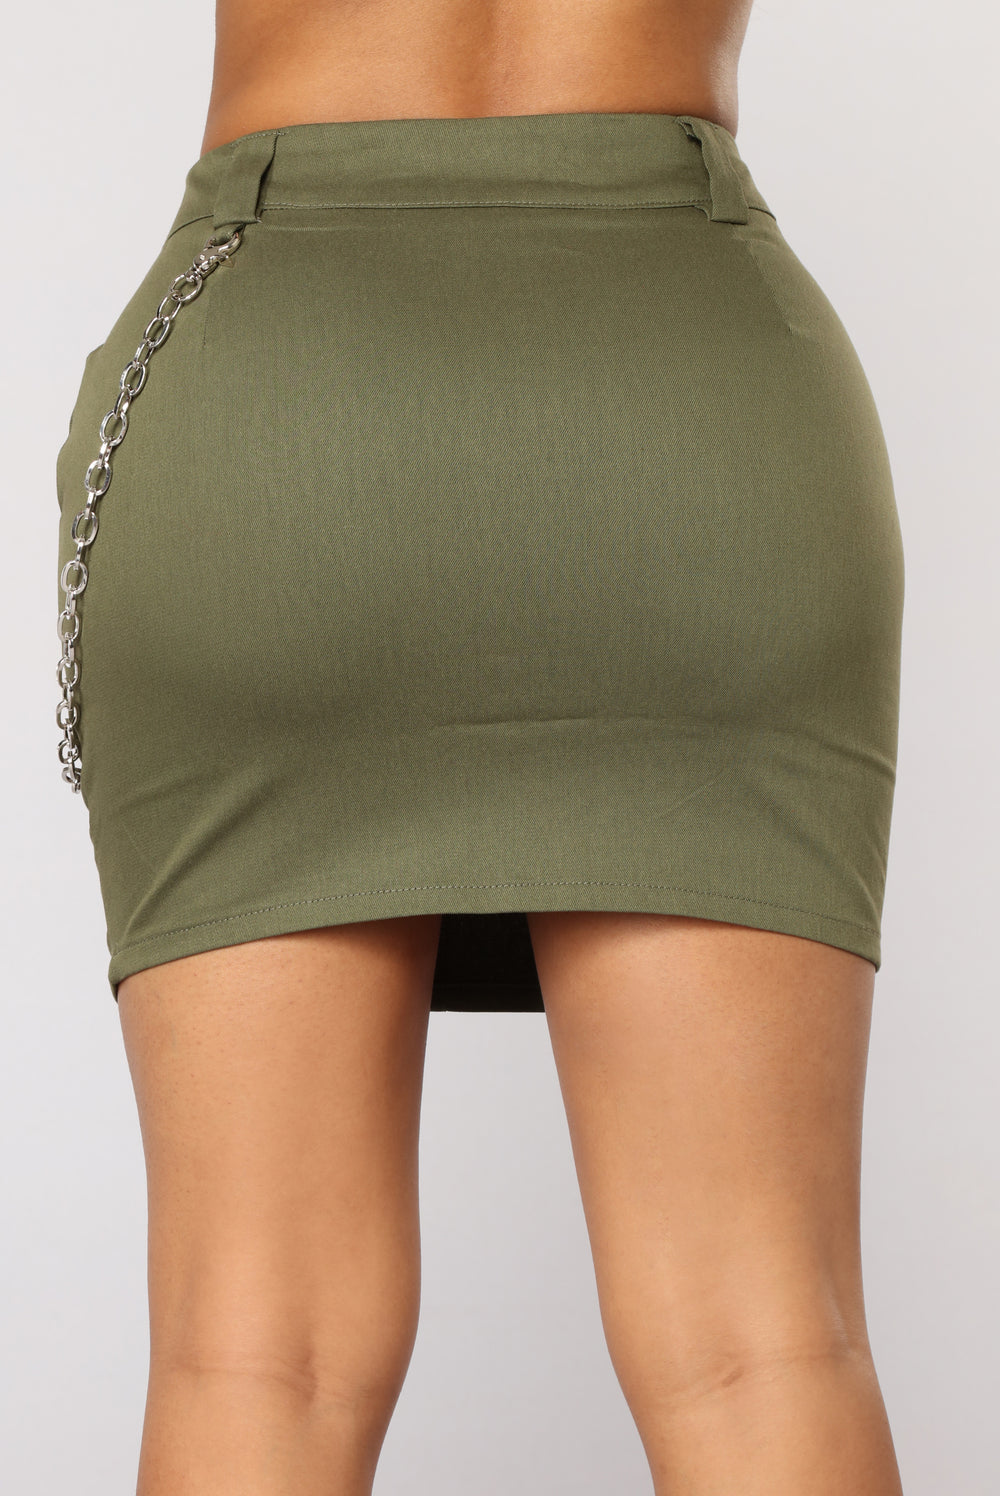 Leila Mini Skirt - Olive